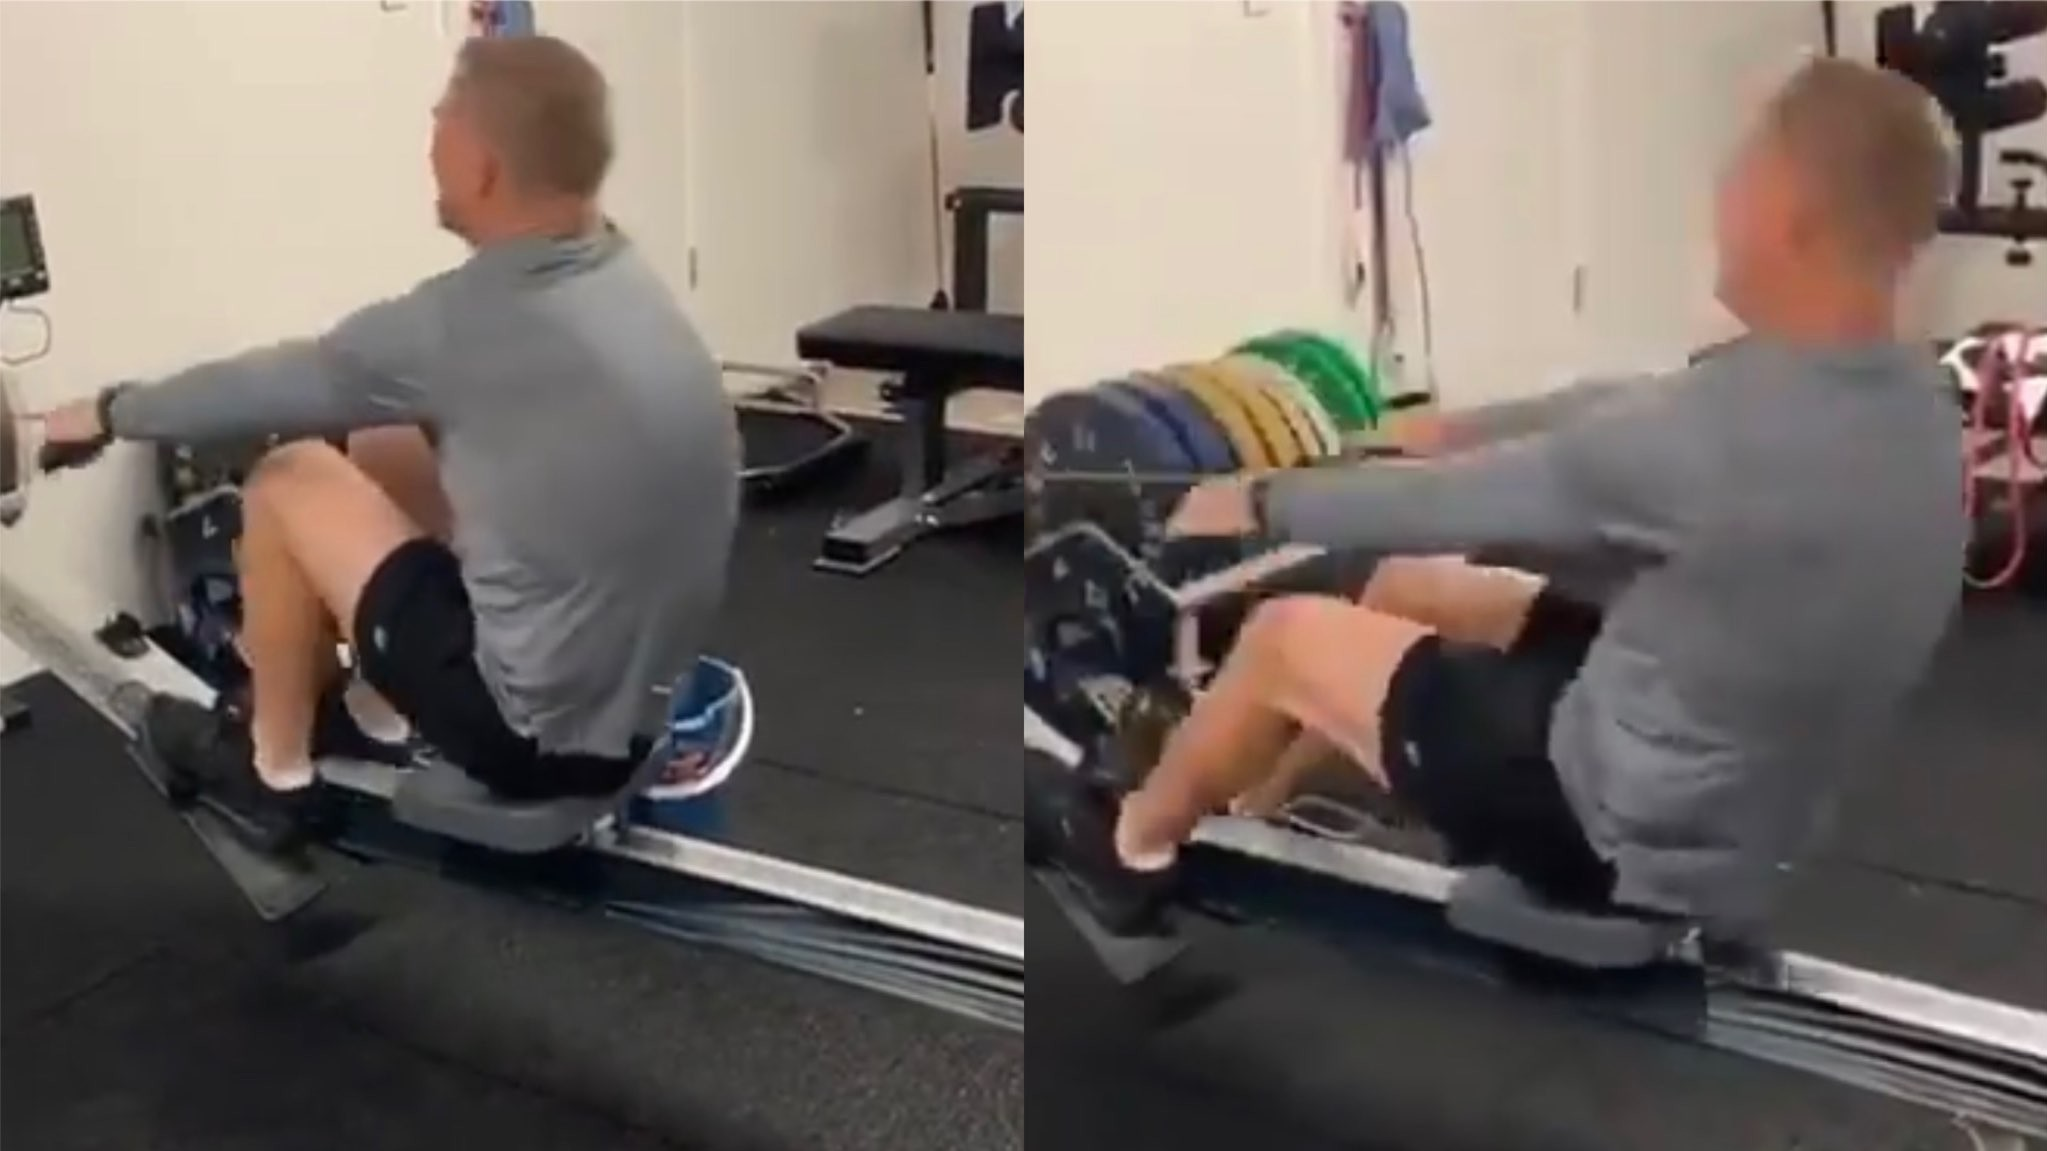 WATCH - David Warner takes his fitness to the next level